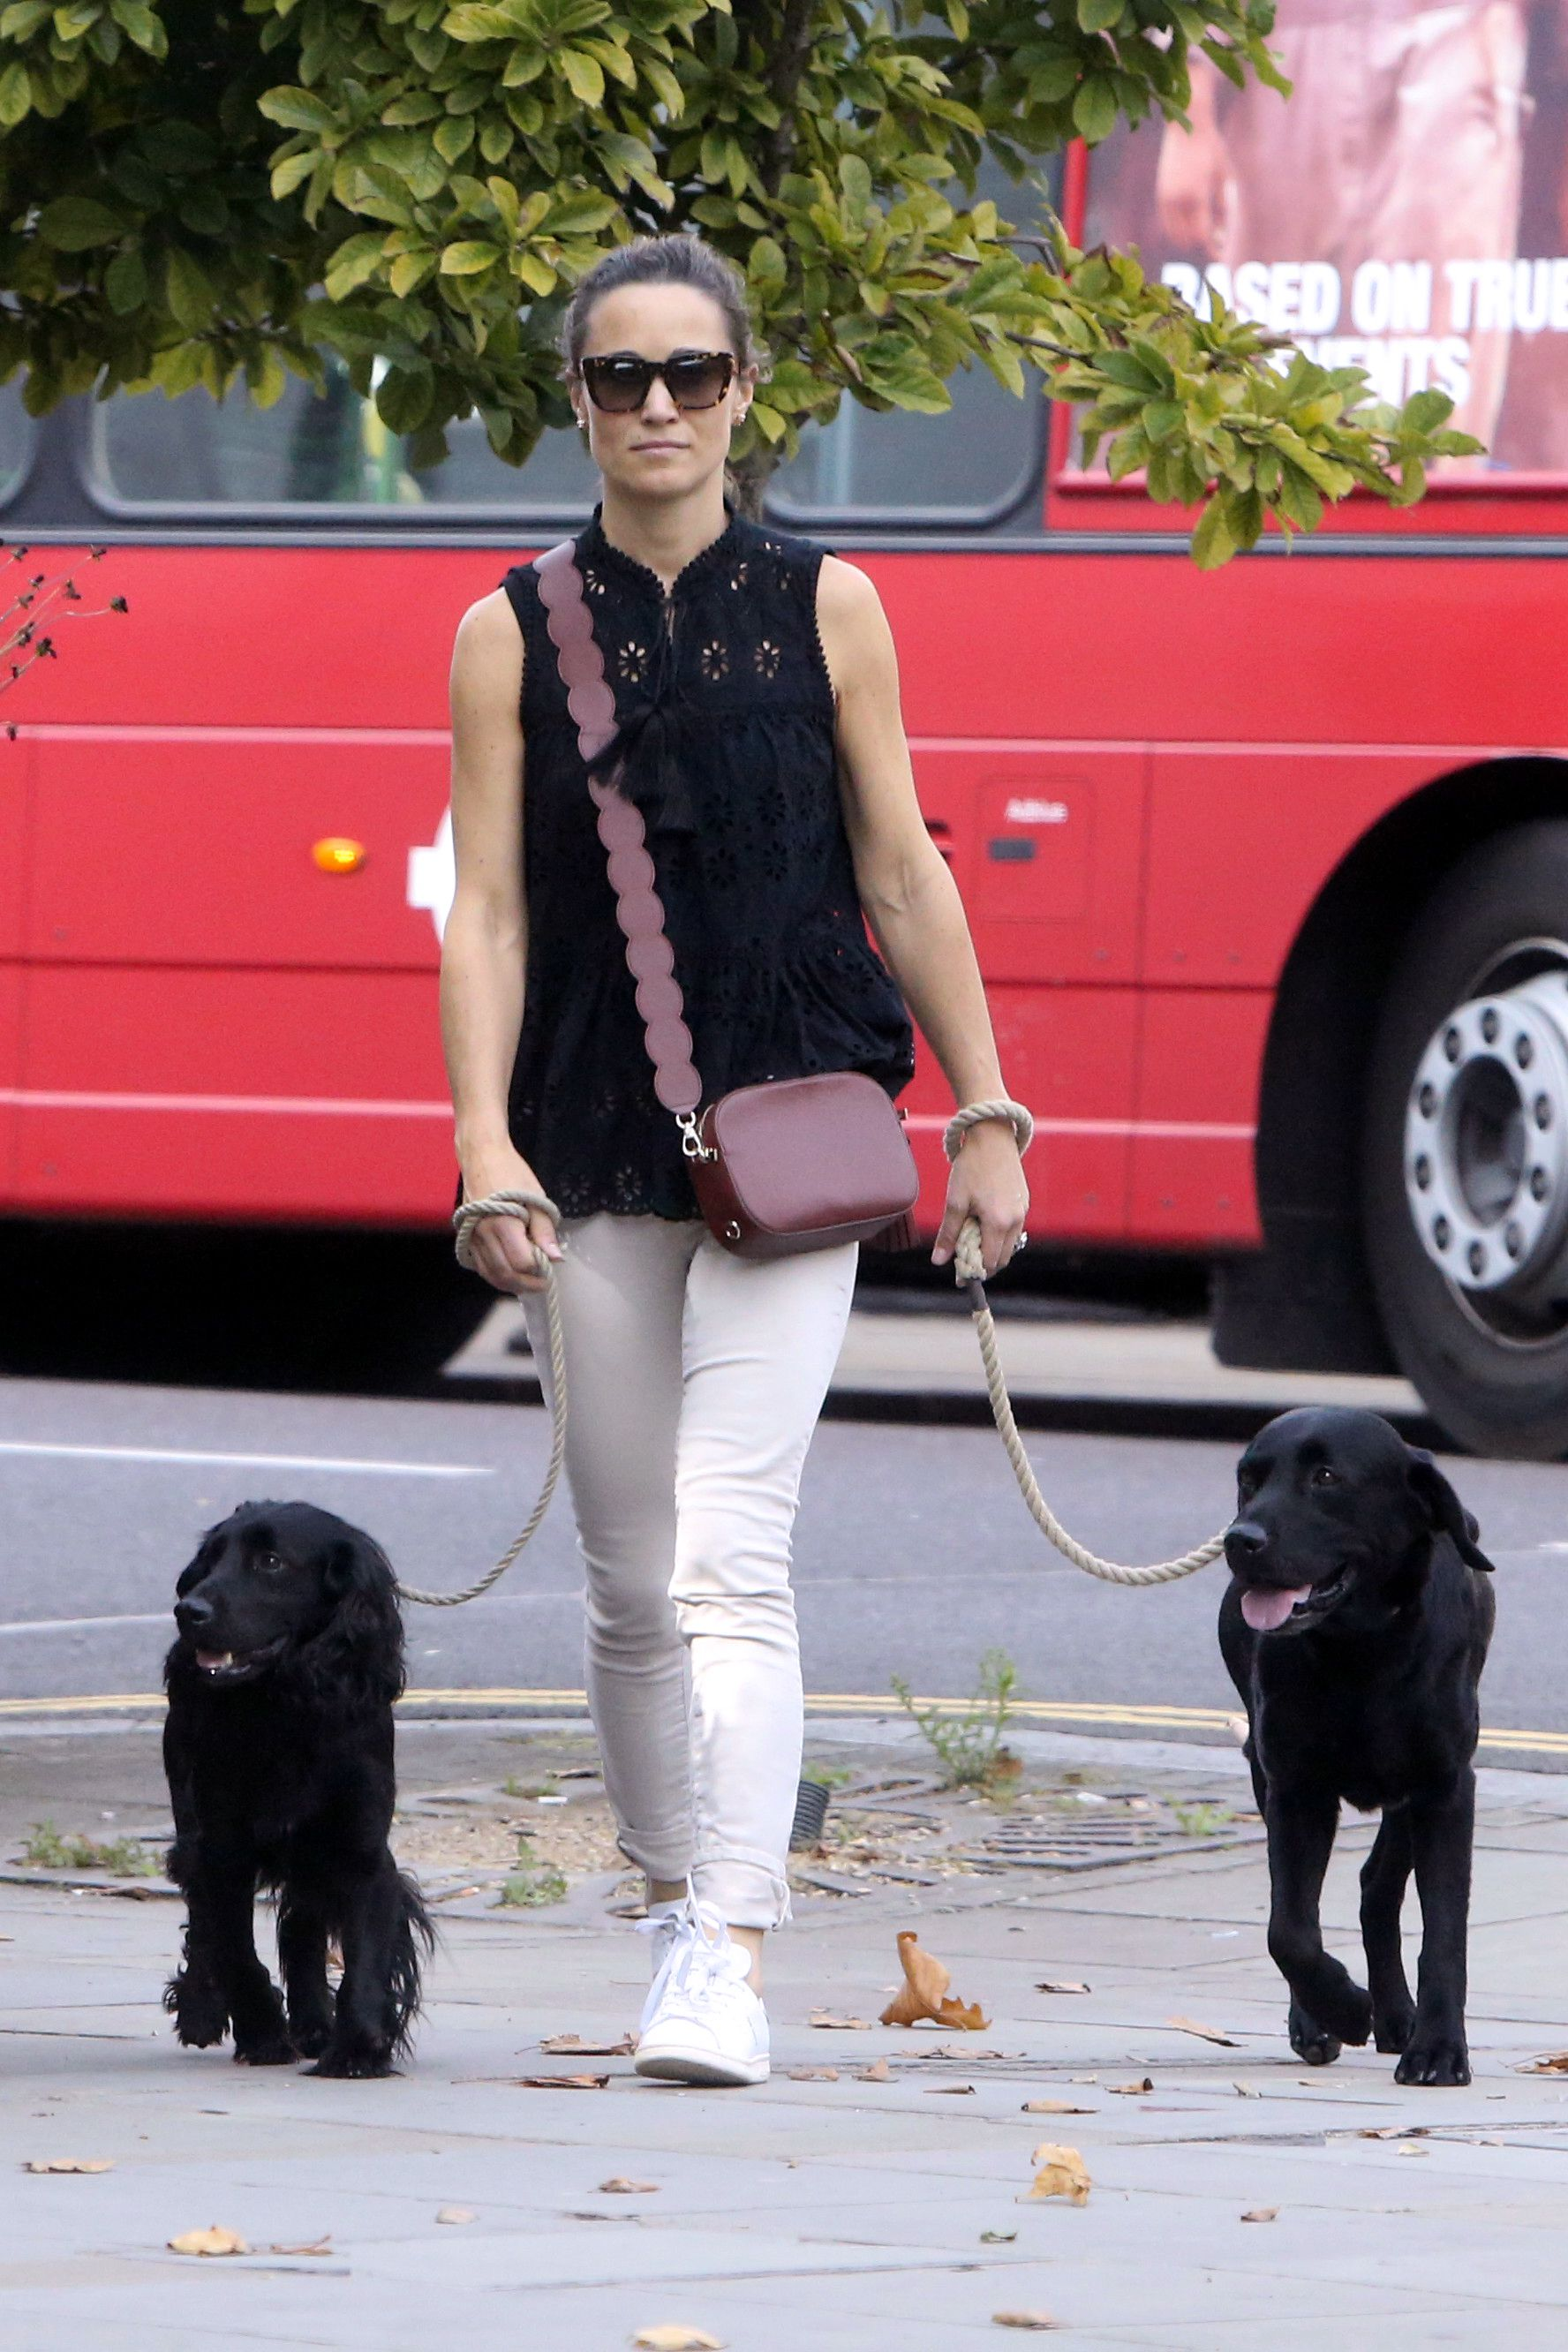 Pippa also owns the Pop and Suki camera bag in a wine color with a scallop strap. She styled the crossbody accessory with a black top and white jeans while out walking her dogs in London.